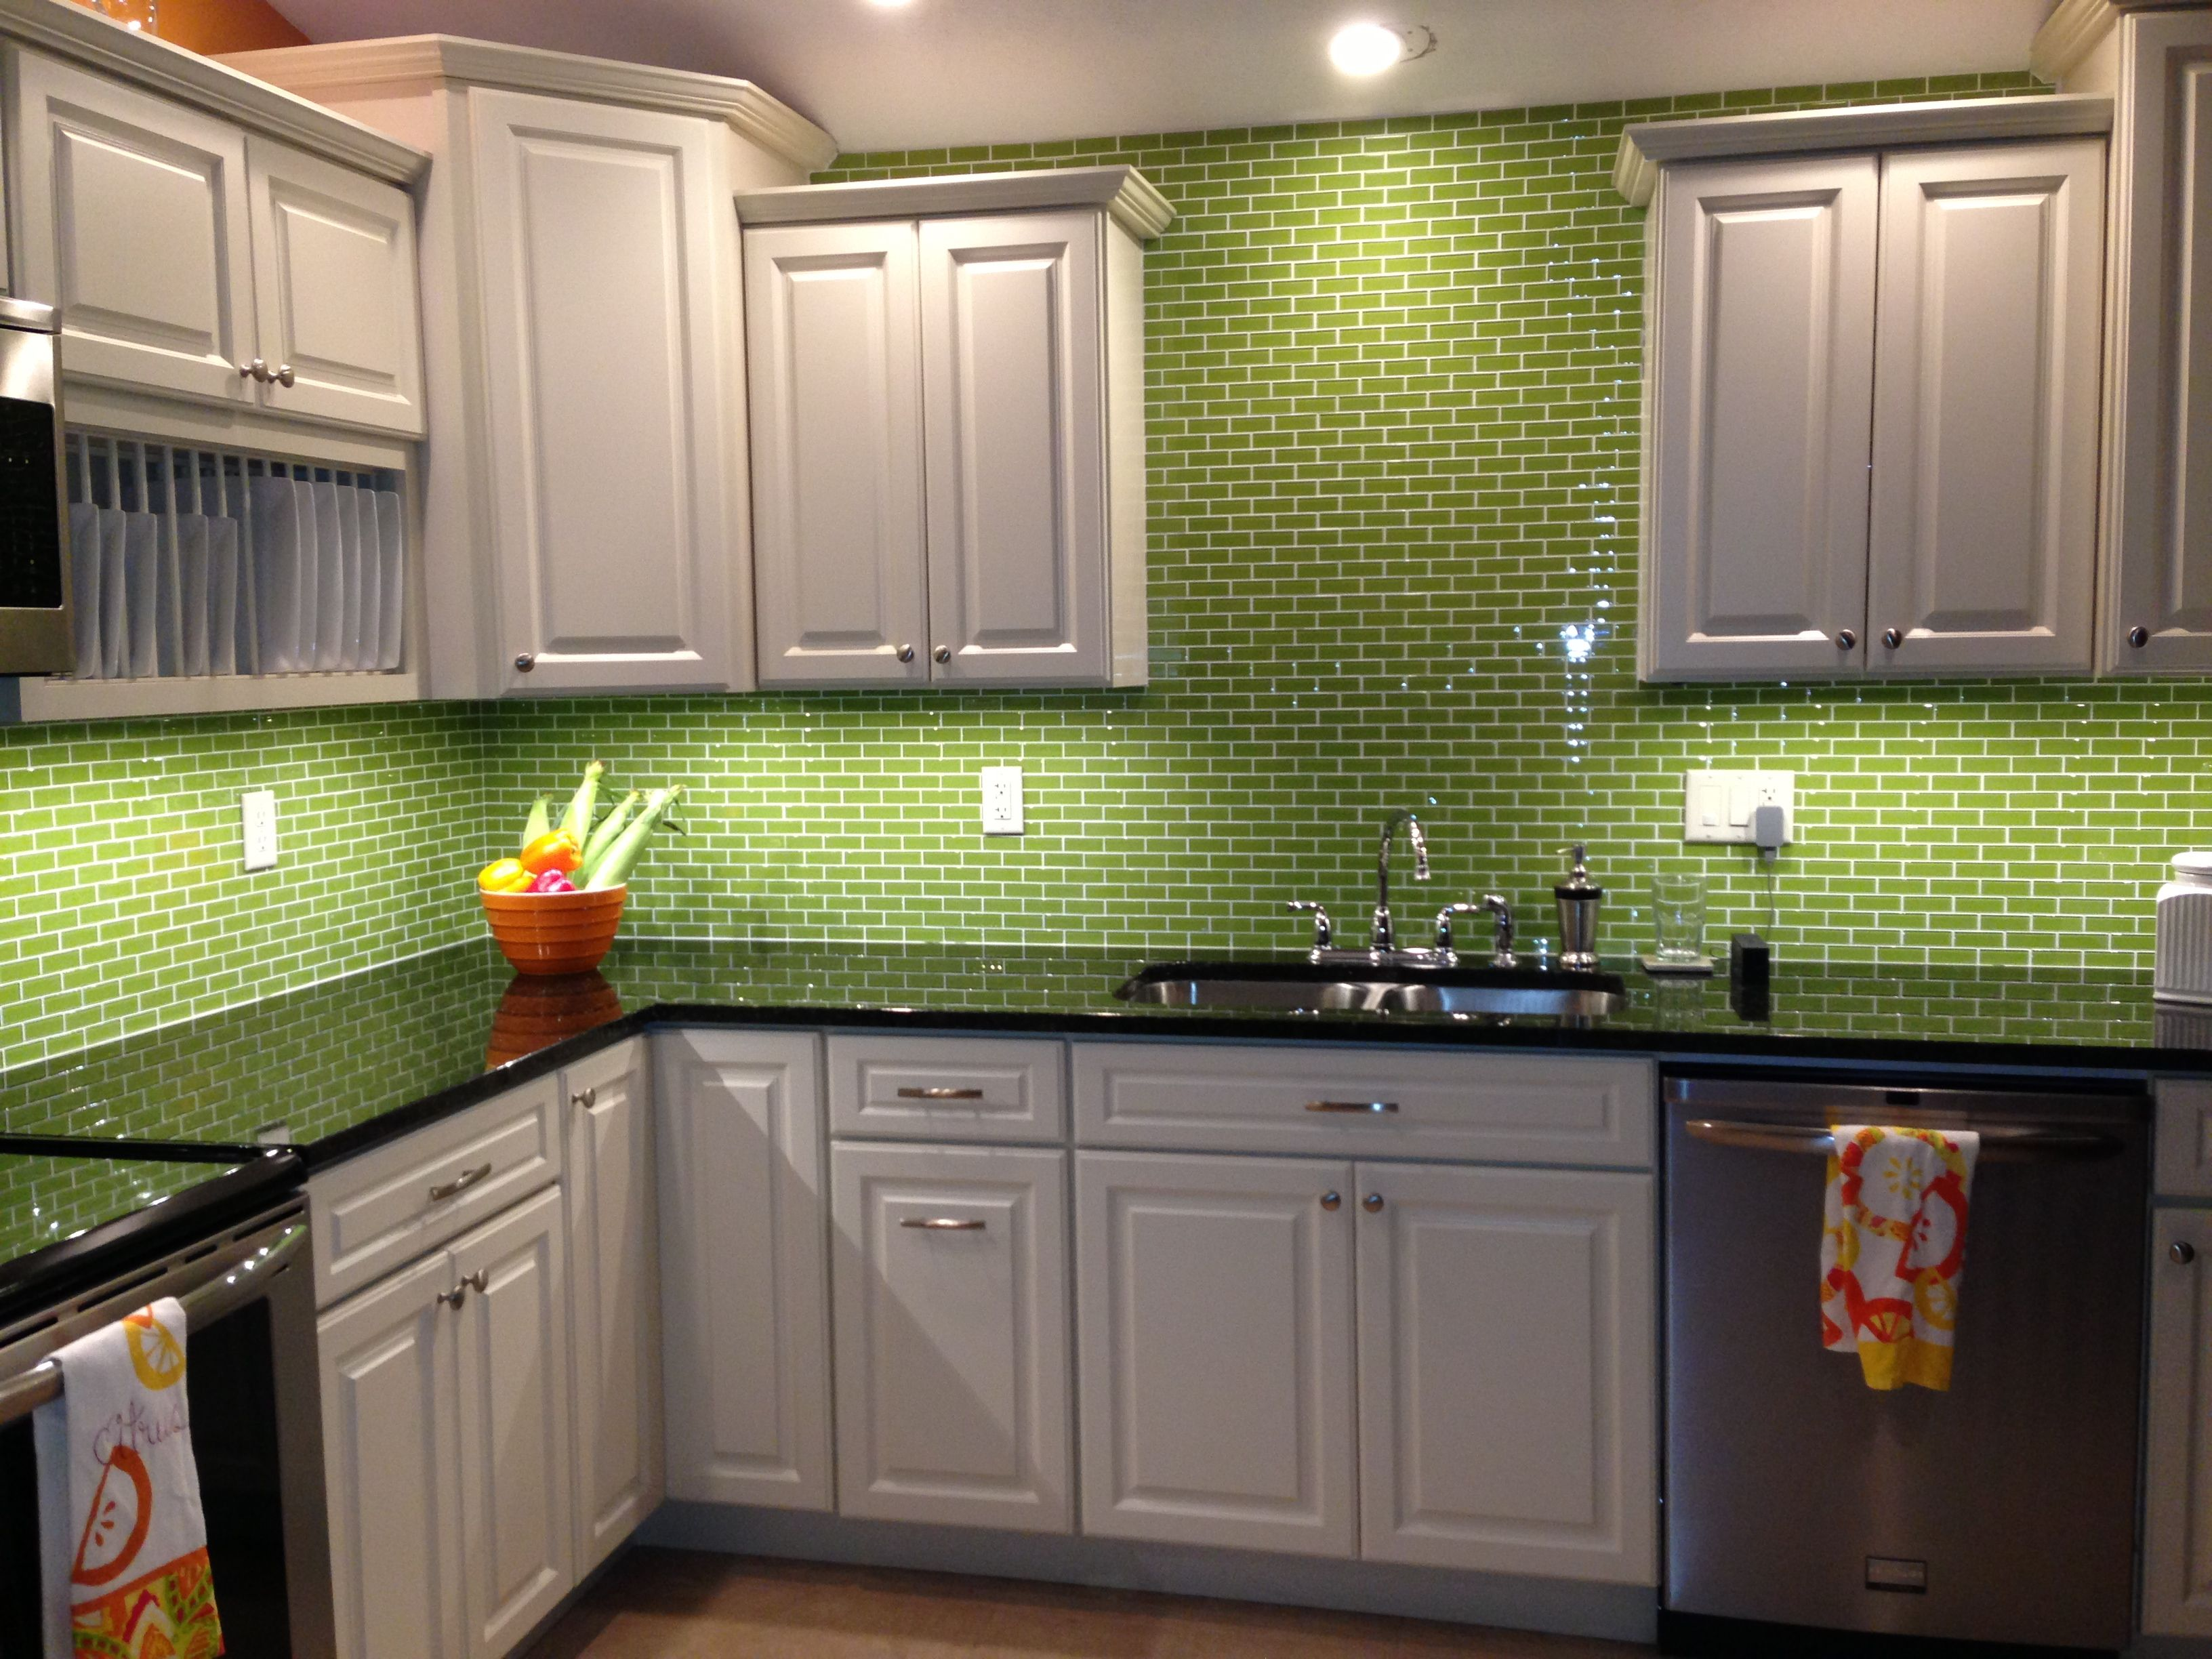 Lime green glass subway tile backsplash kitchen kitchen for Glass tile kitchen backsplash ideas